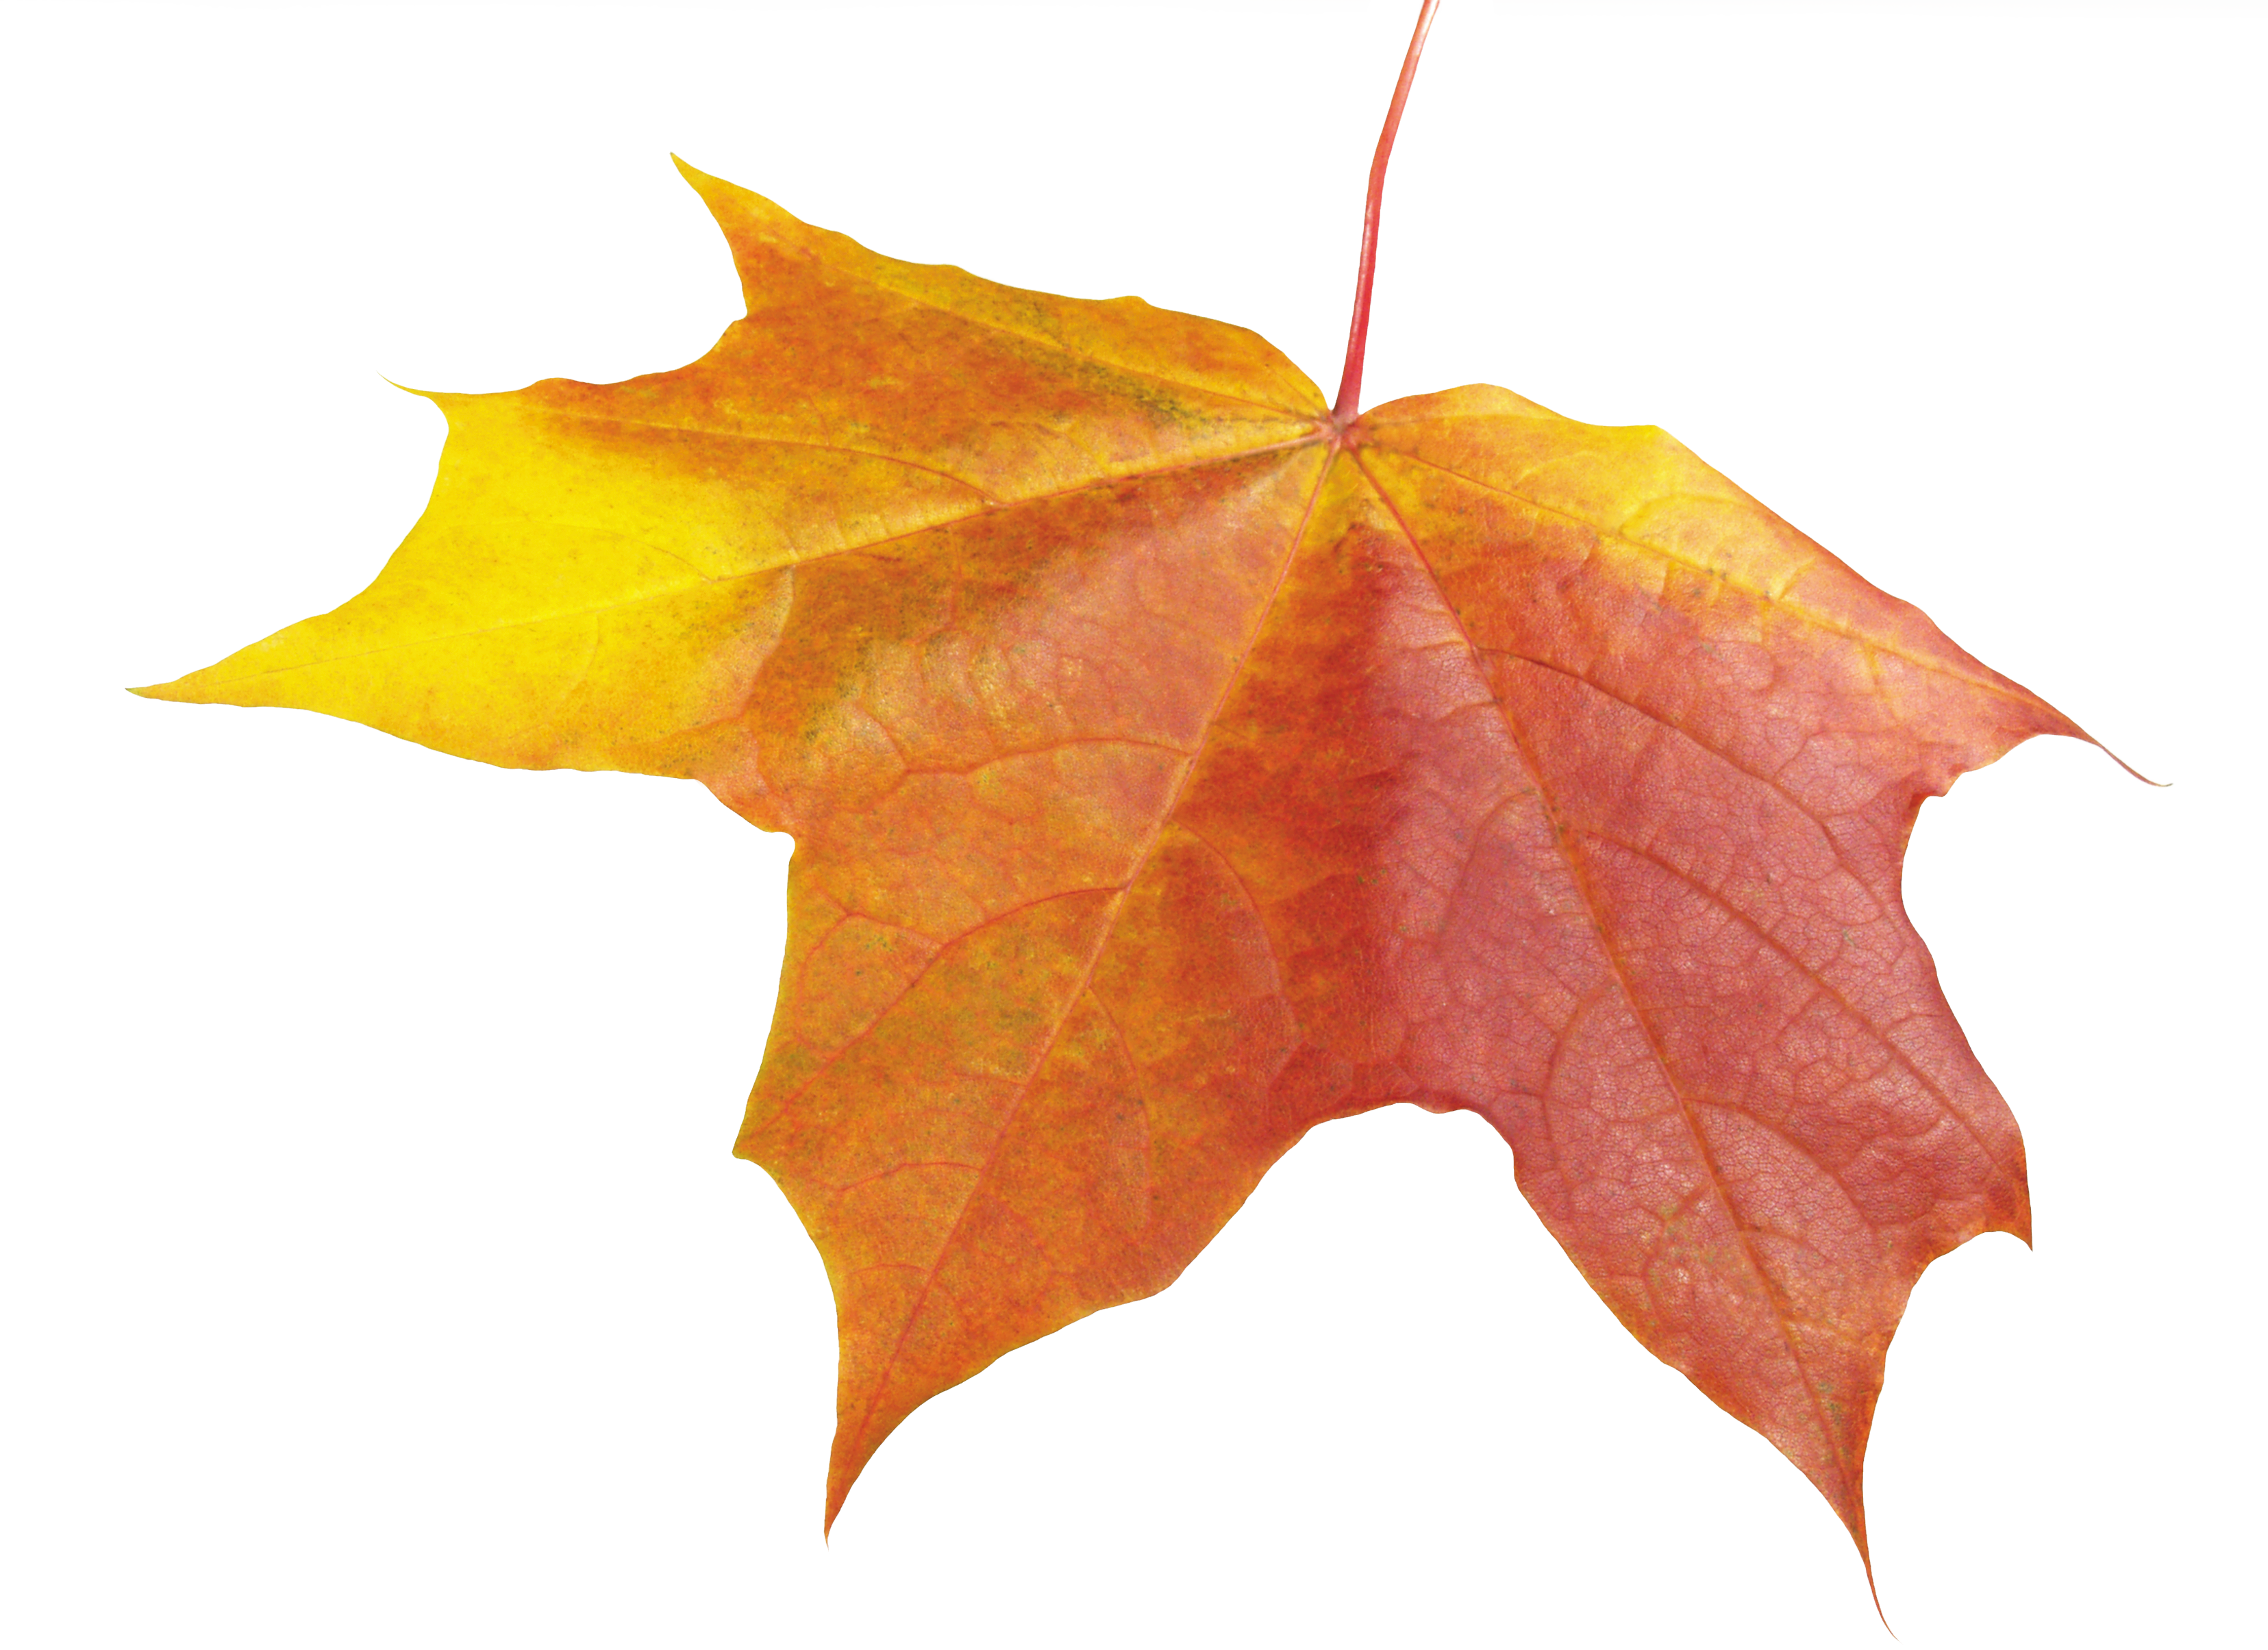 Leaf, Autumn, Spring, Winter, Seasons, Leaf, Png